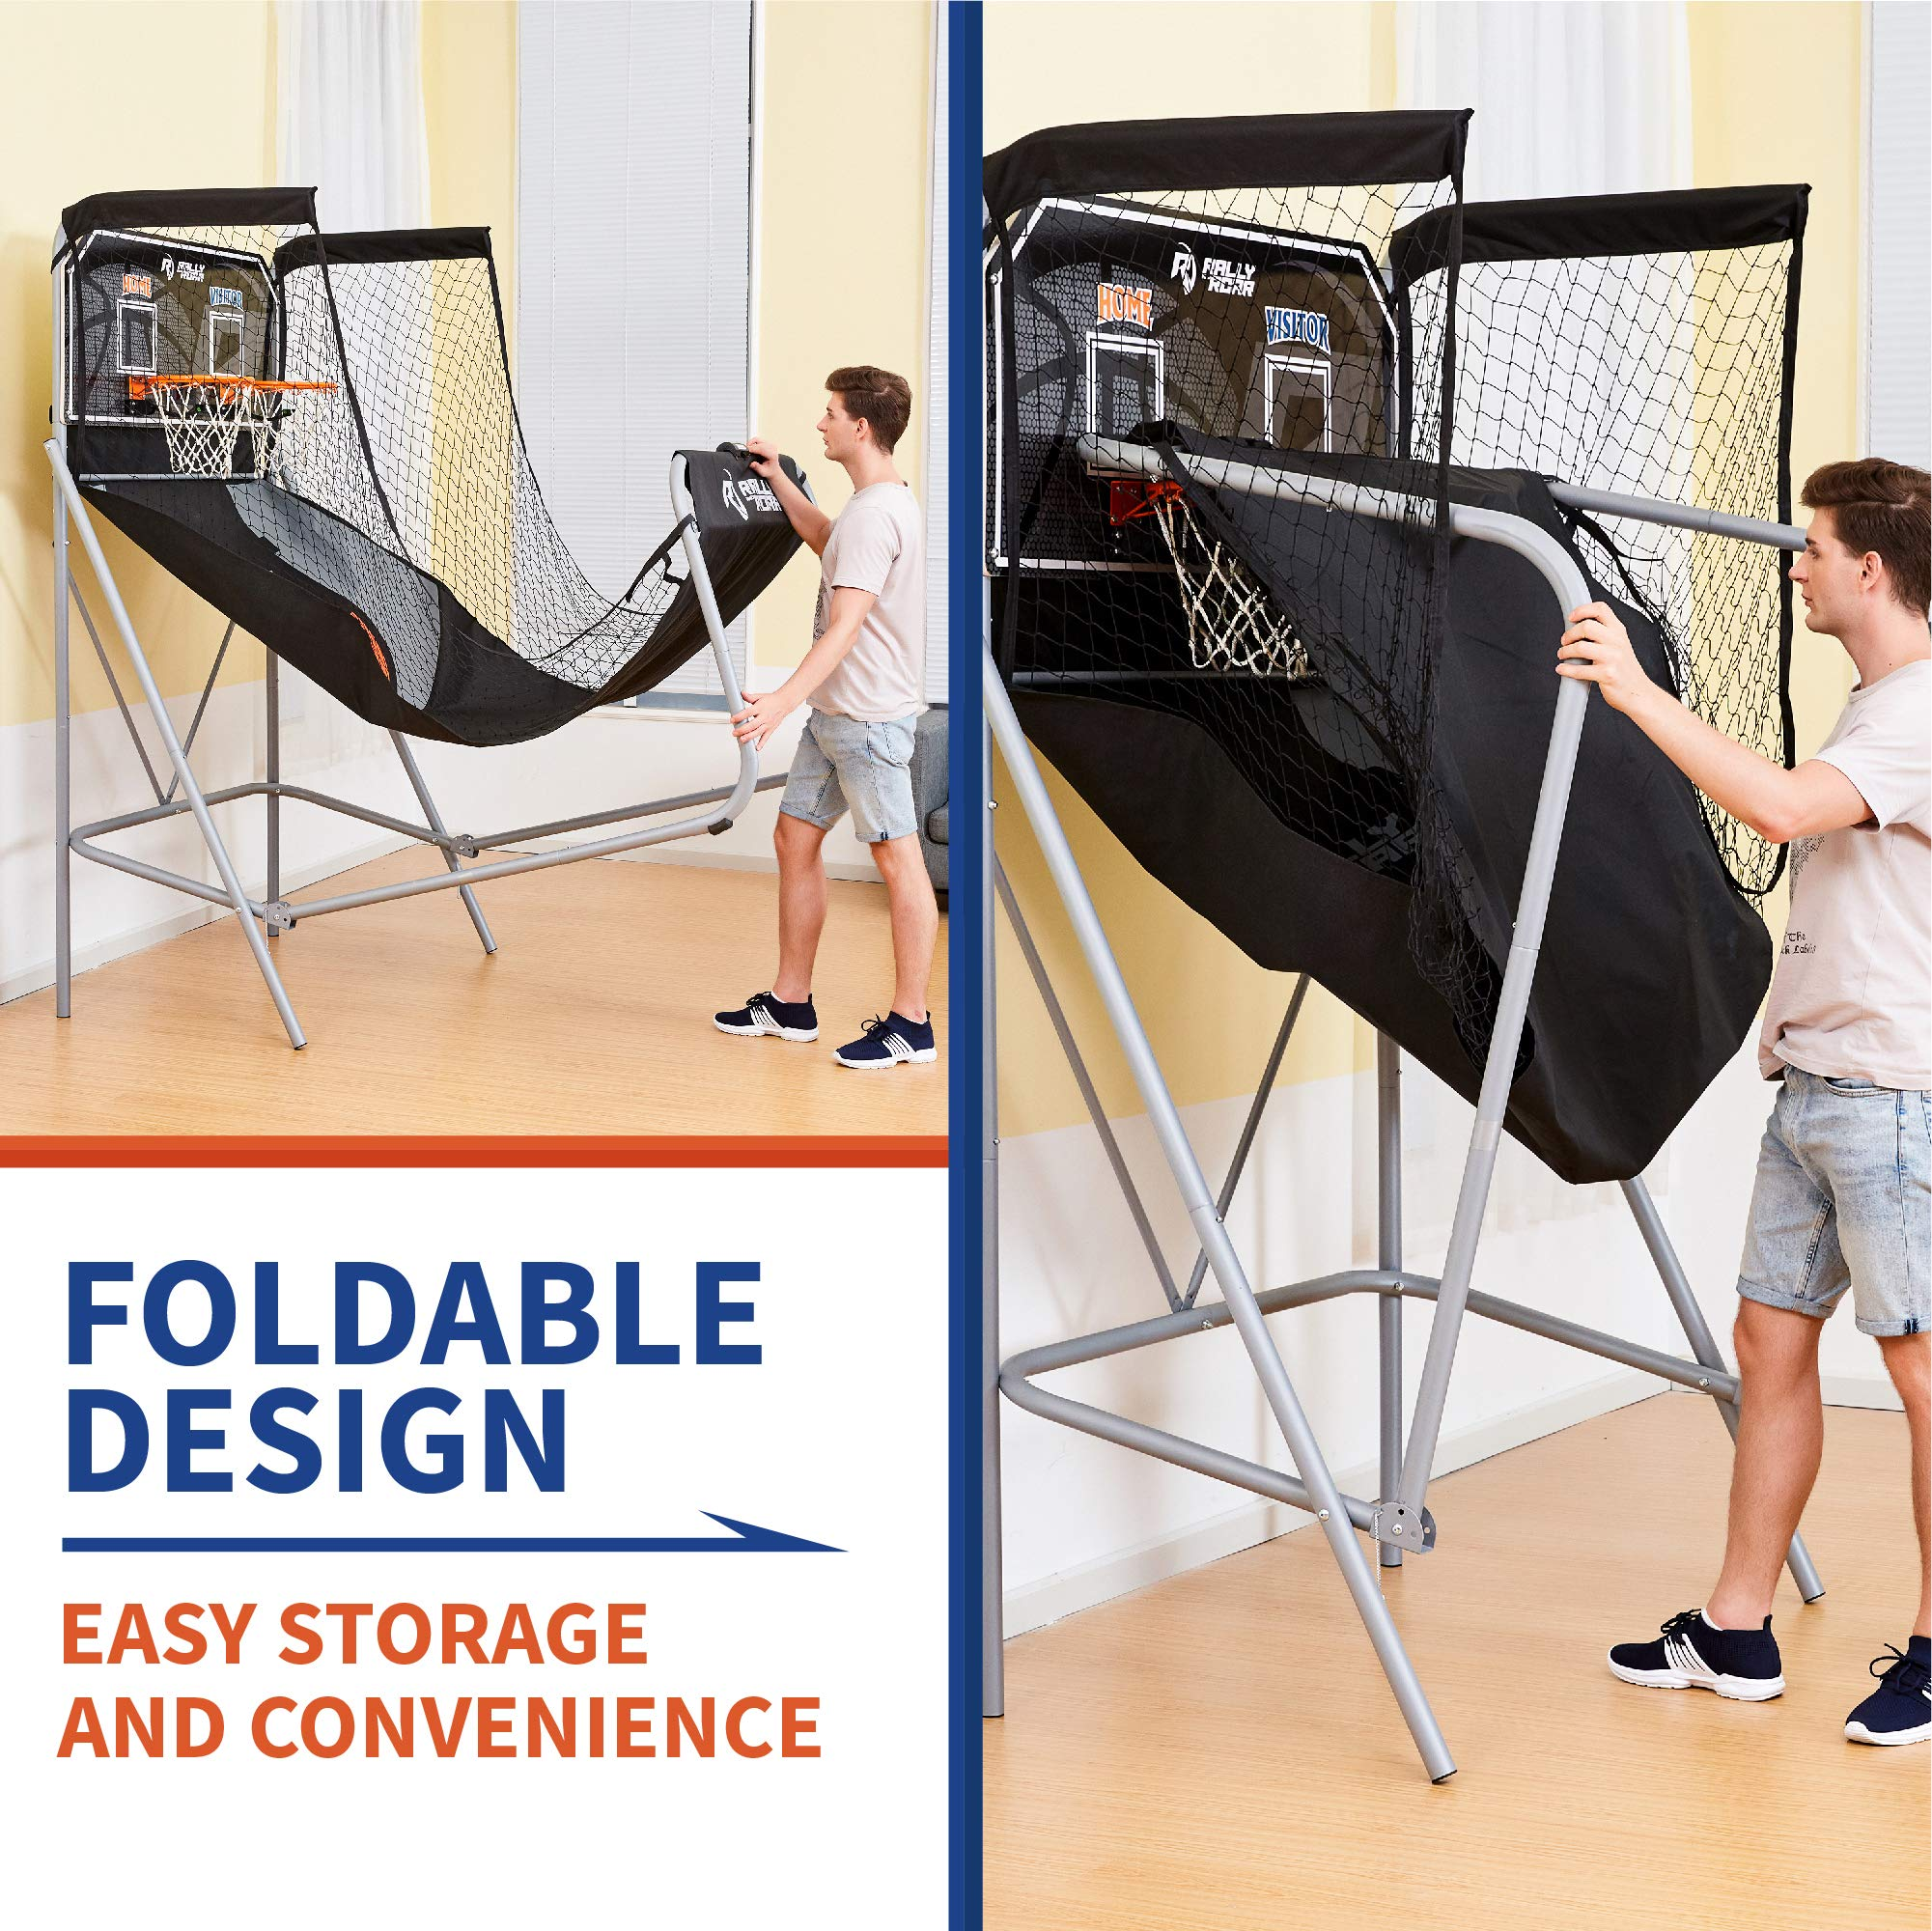 Classic Shootout Basketball Arcade Game, Home Dual Shot with LED Lights and Scorer - 8-Option Interactive Indoor Basketball Hoop Game with Double Hoops, 7 Basketballs, Pump - Foldable Space Saver by Rally and Roar (Image #3)